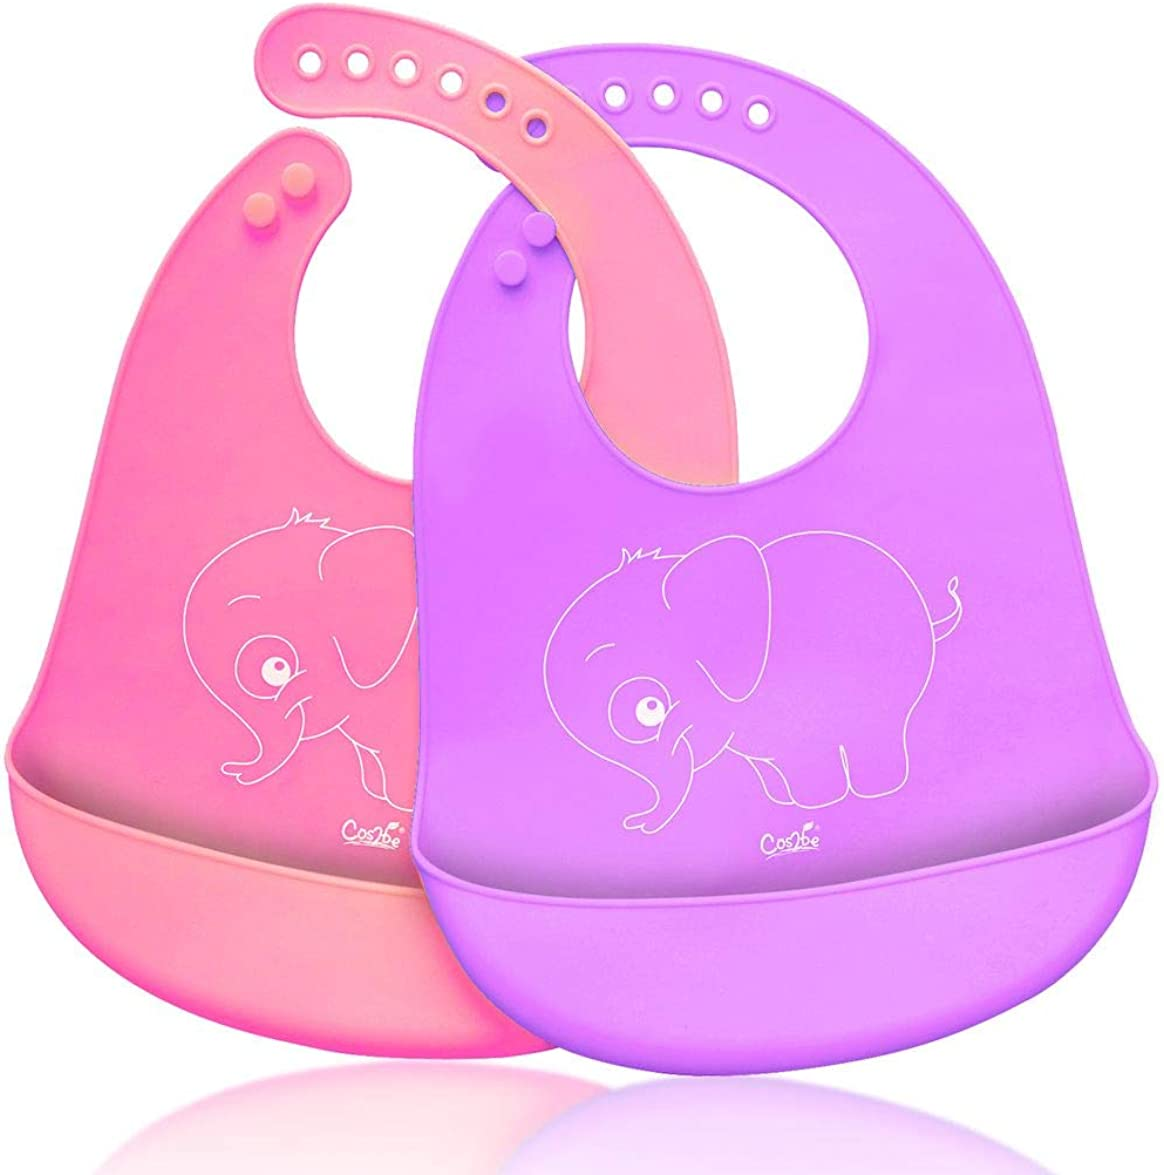 Cos2be Soft Silicone Bibs Easily Wipes Clean, Adjustable Smart Snaps Baby Bibs for Babies or Toddlers (Pack of 2)